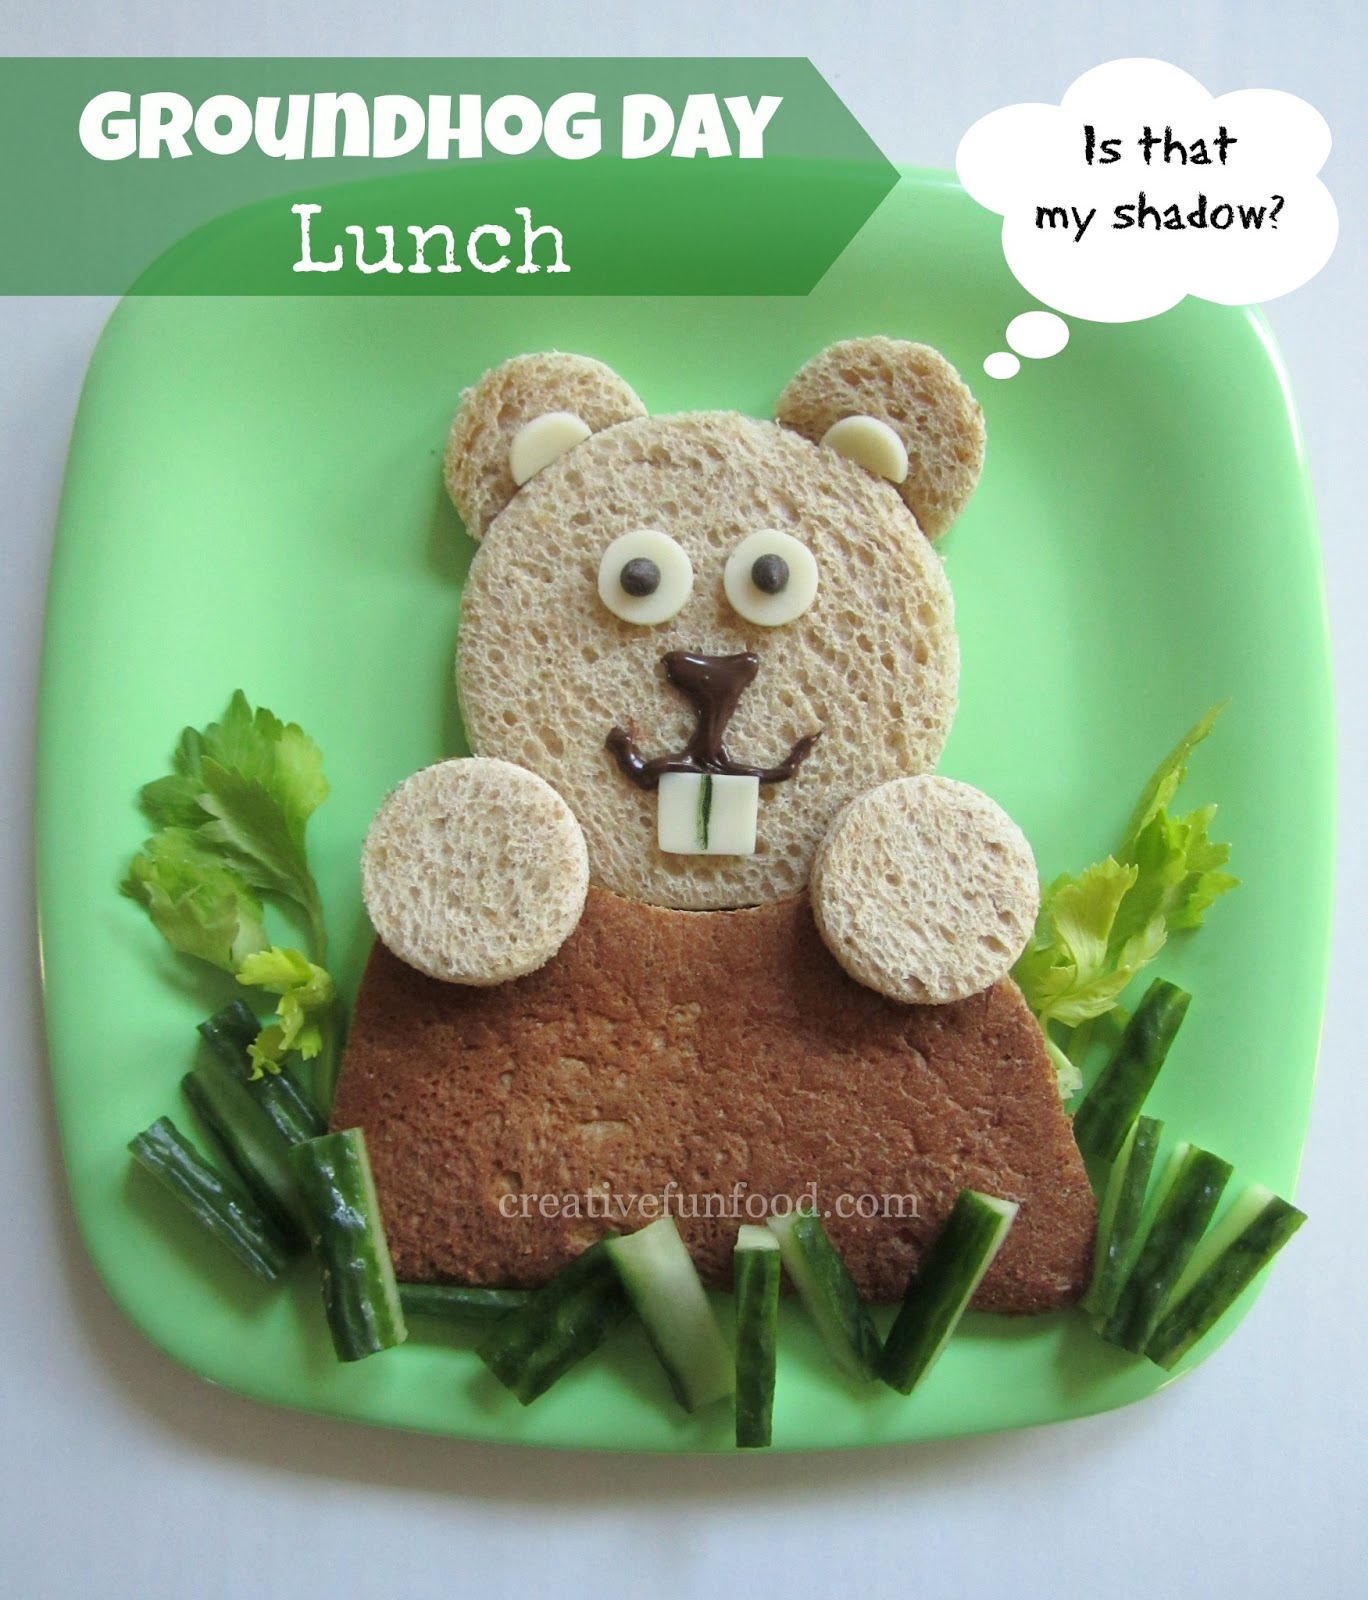 Creative Food Groundhog Day Lunch